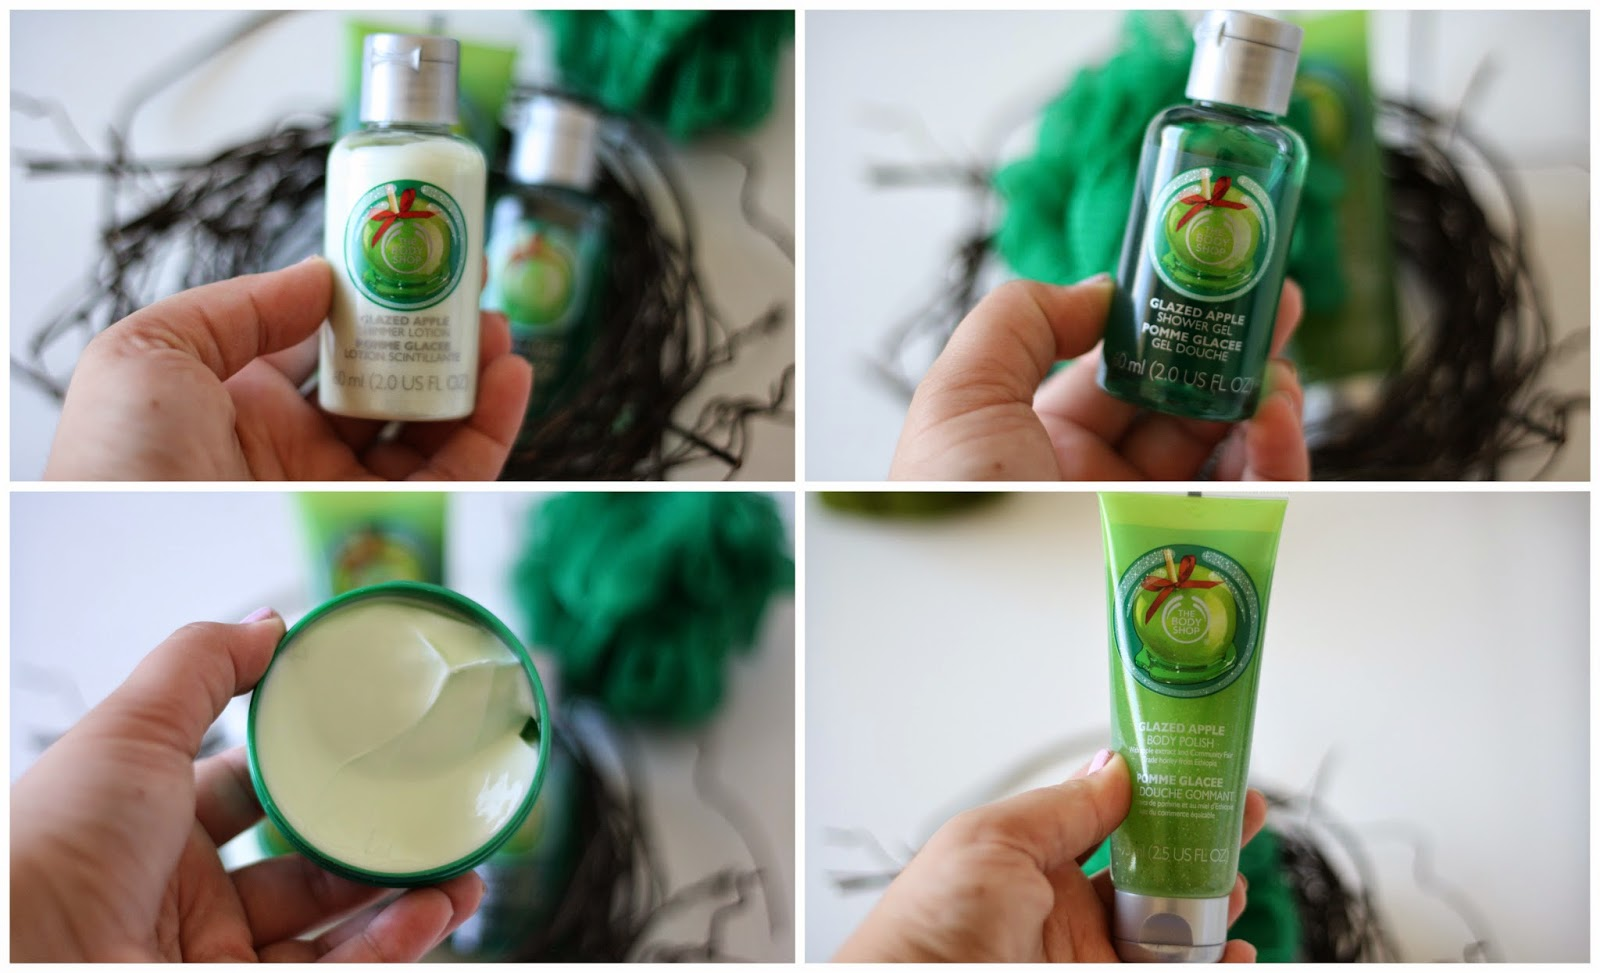 Glazed Apple, The Body Shop,